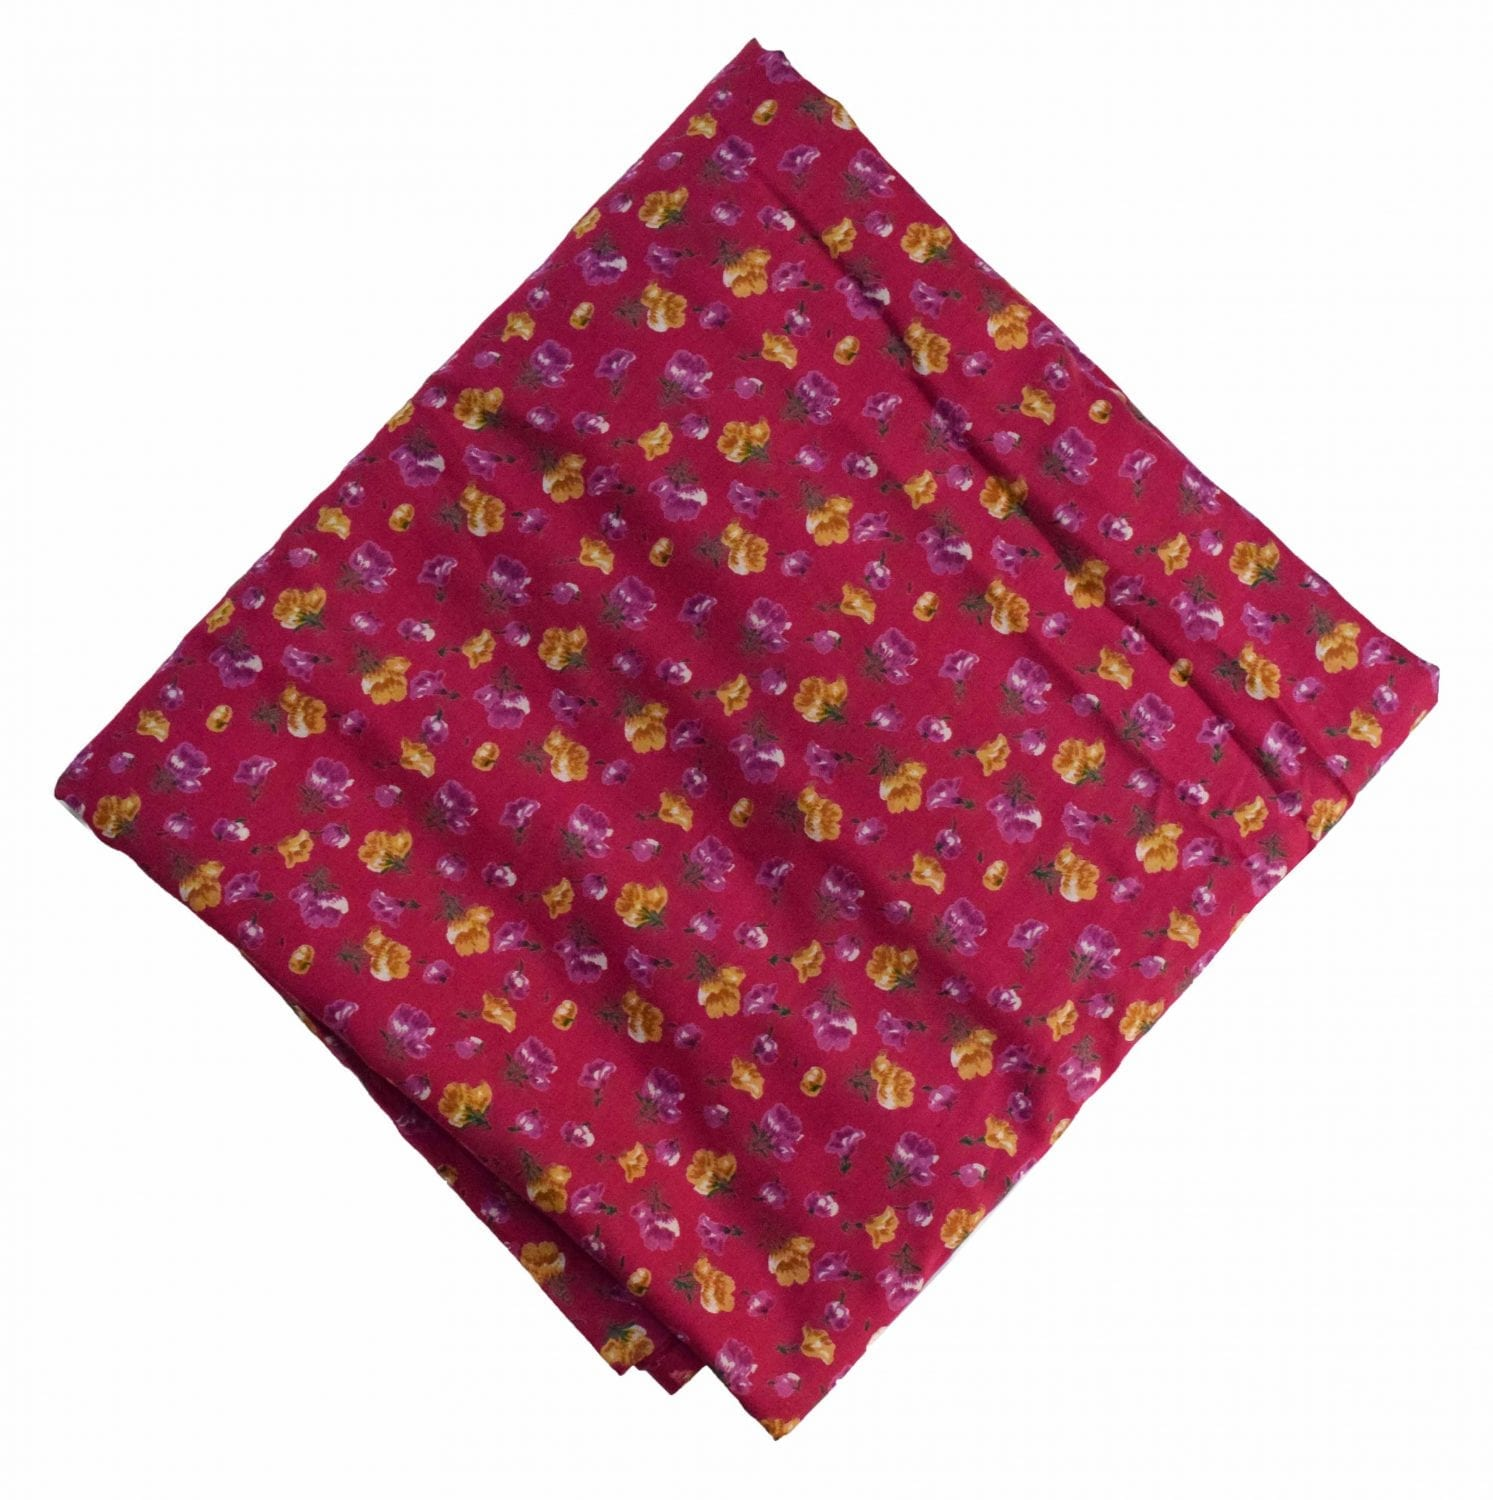 Magenta Printed 100% Pure Cotton Fabric PC479 1